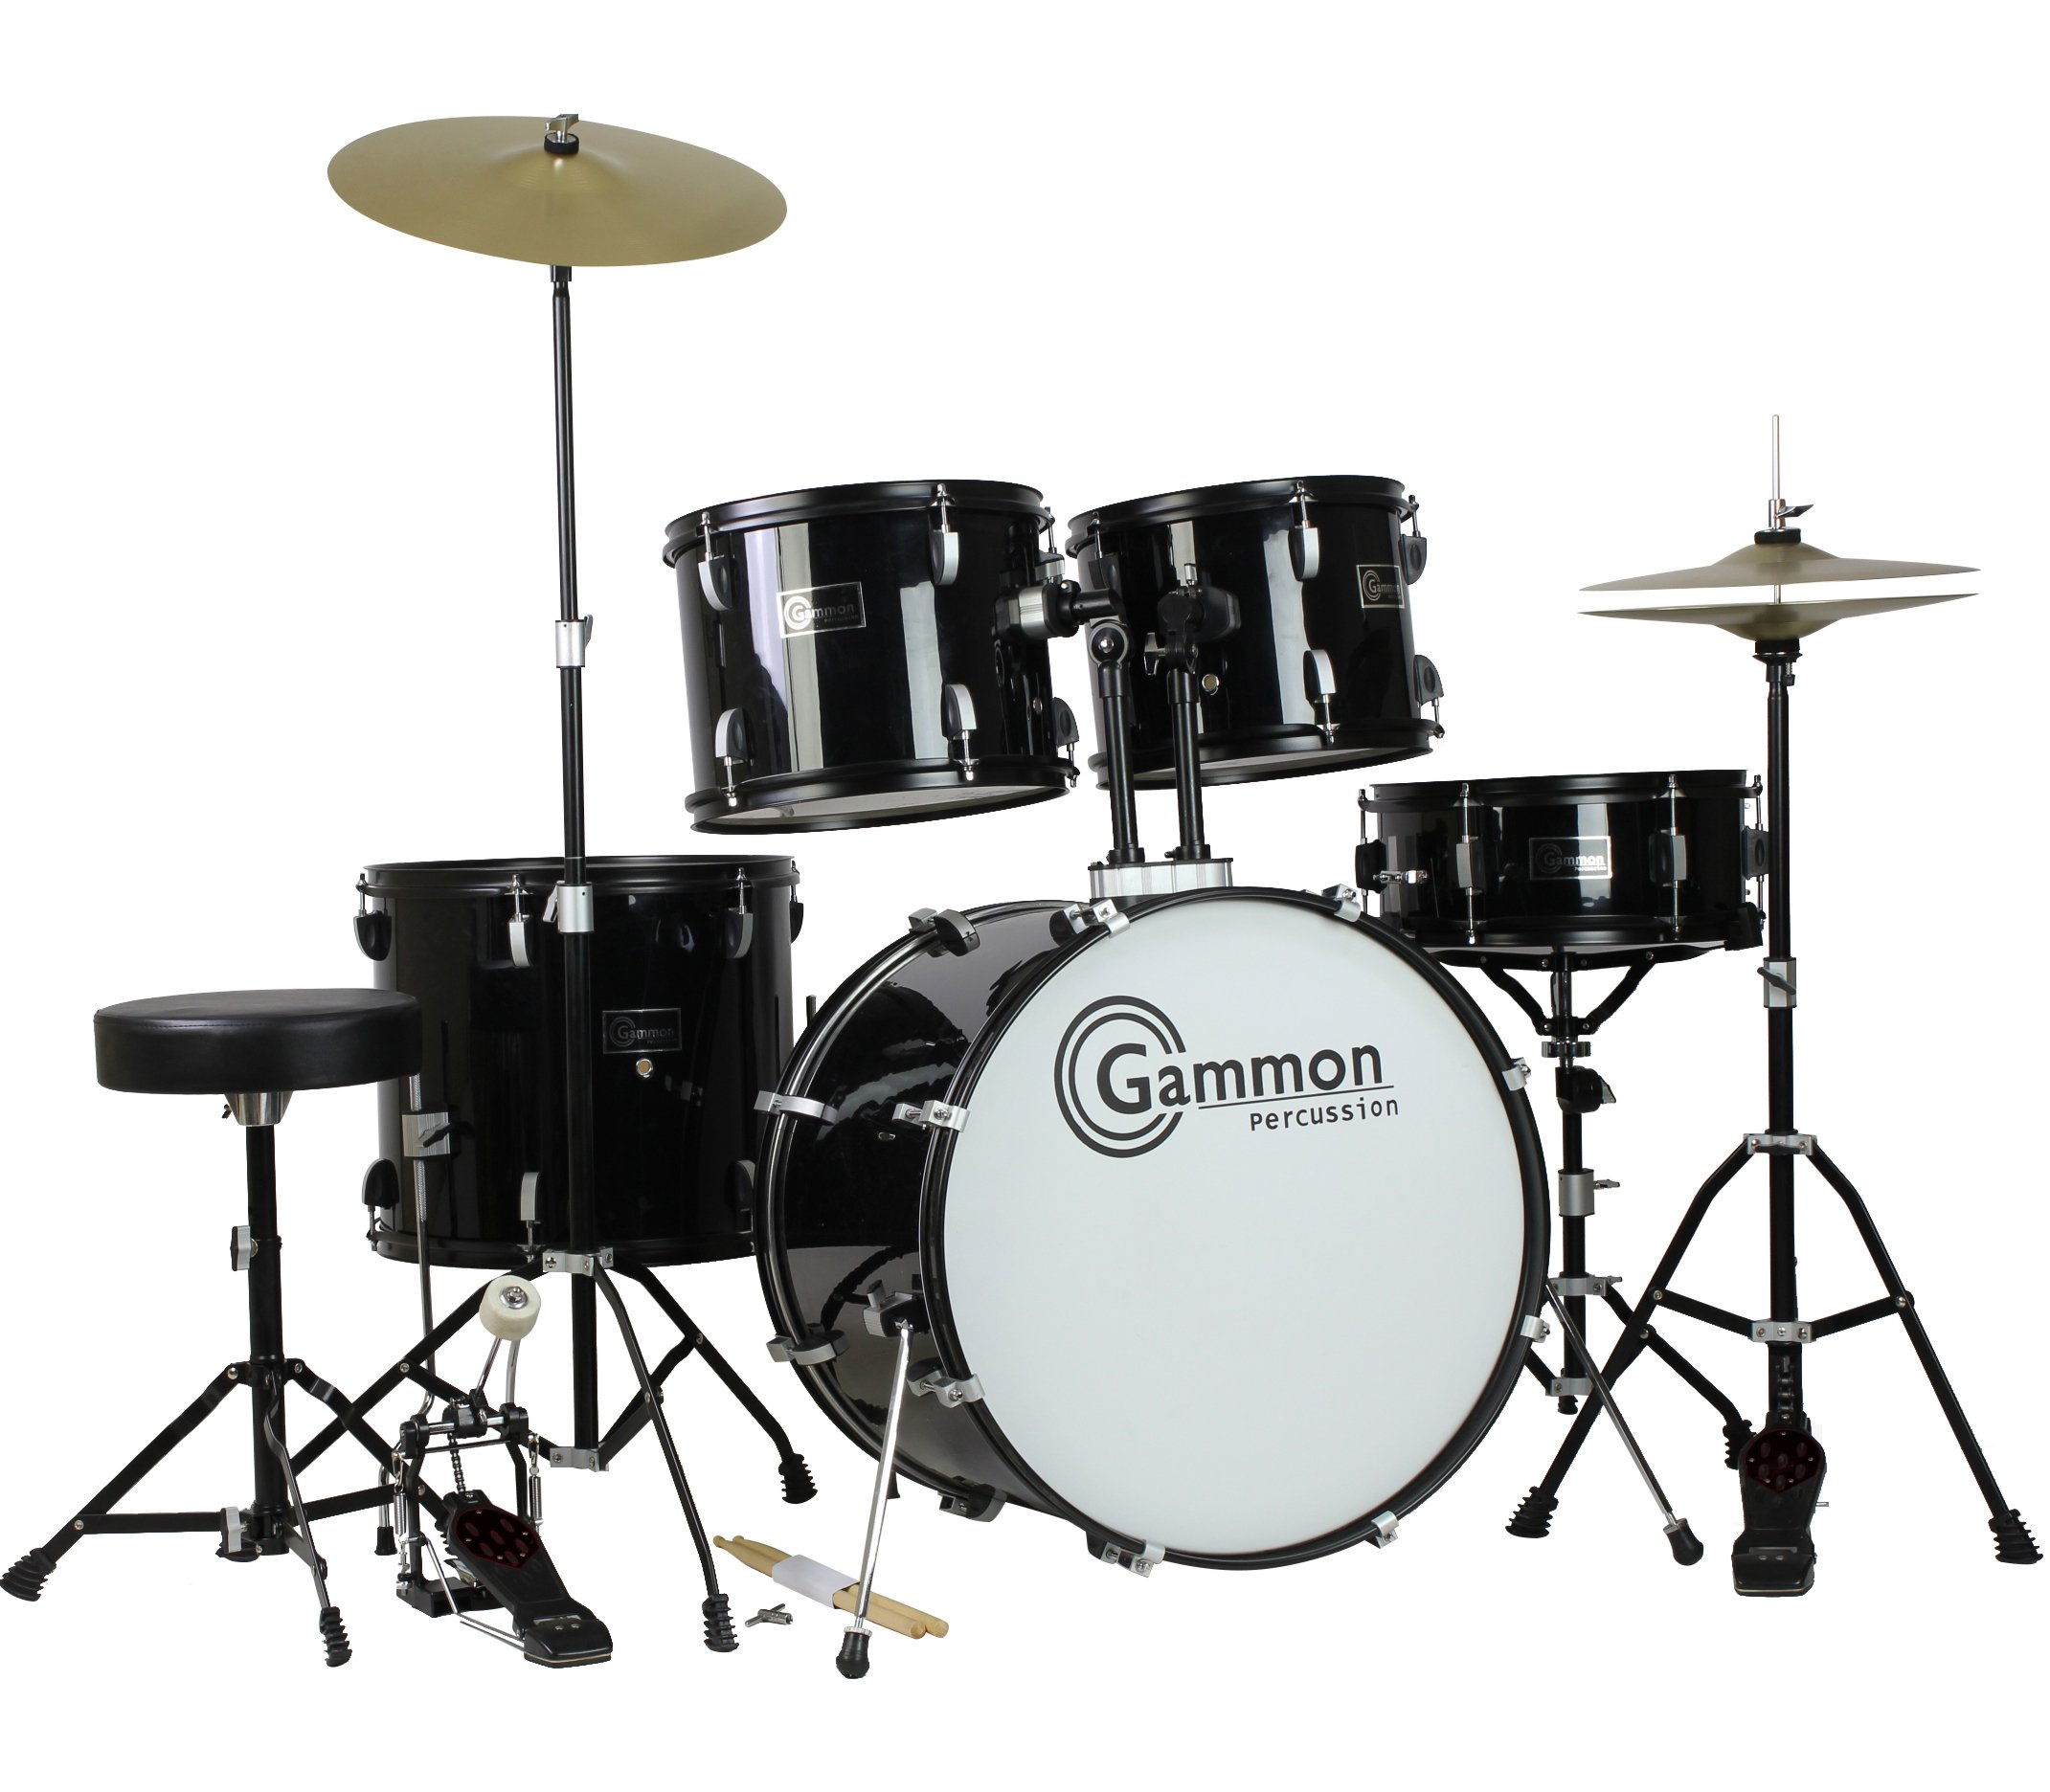 Buy Drums Now!